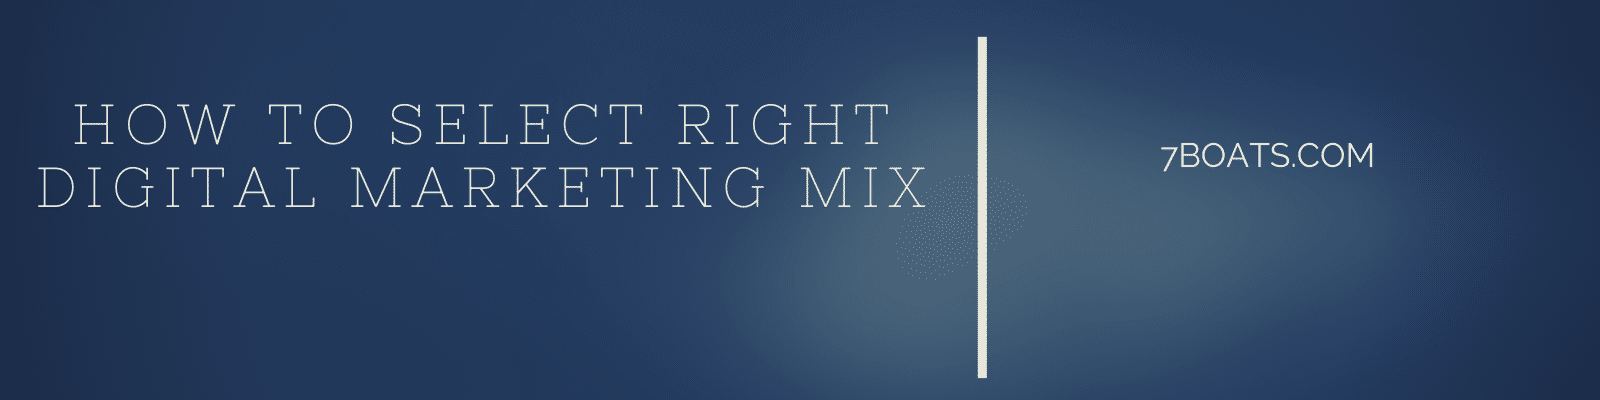 how to create right digital marketing mix - 7boats